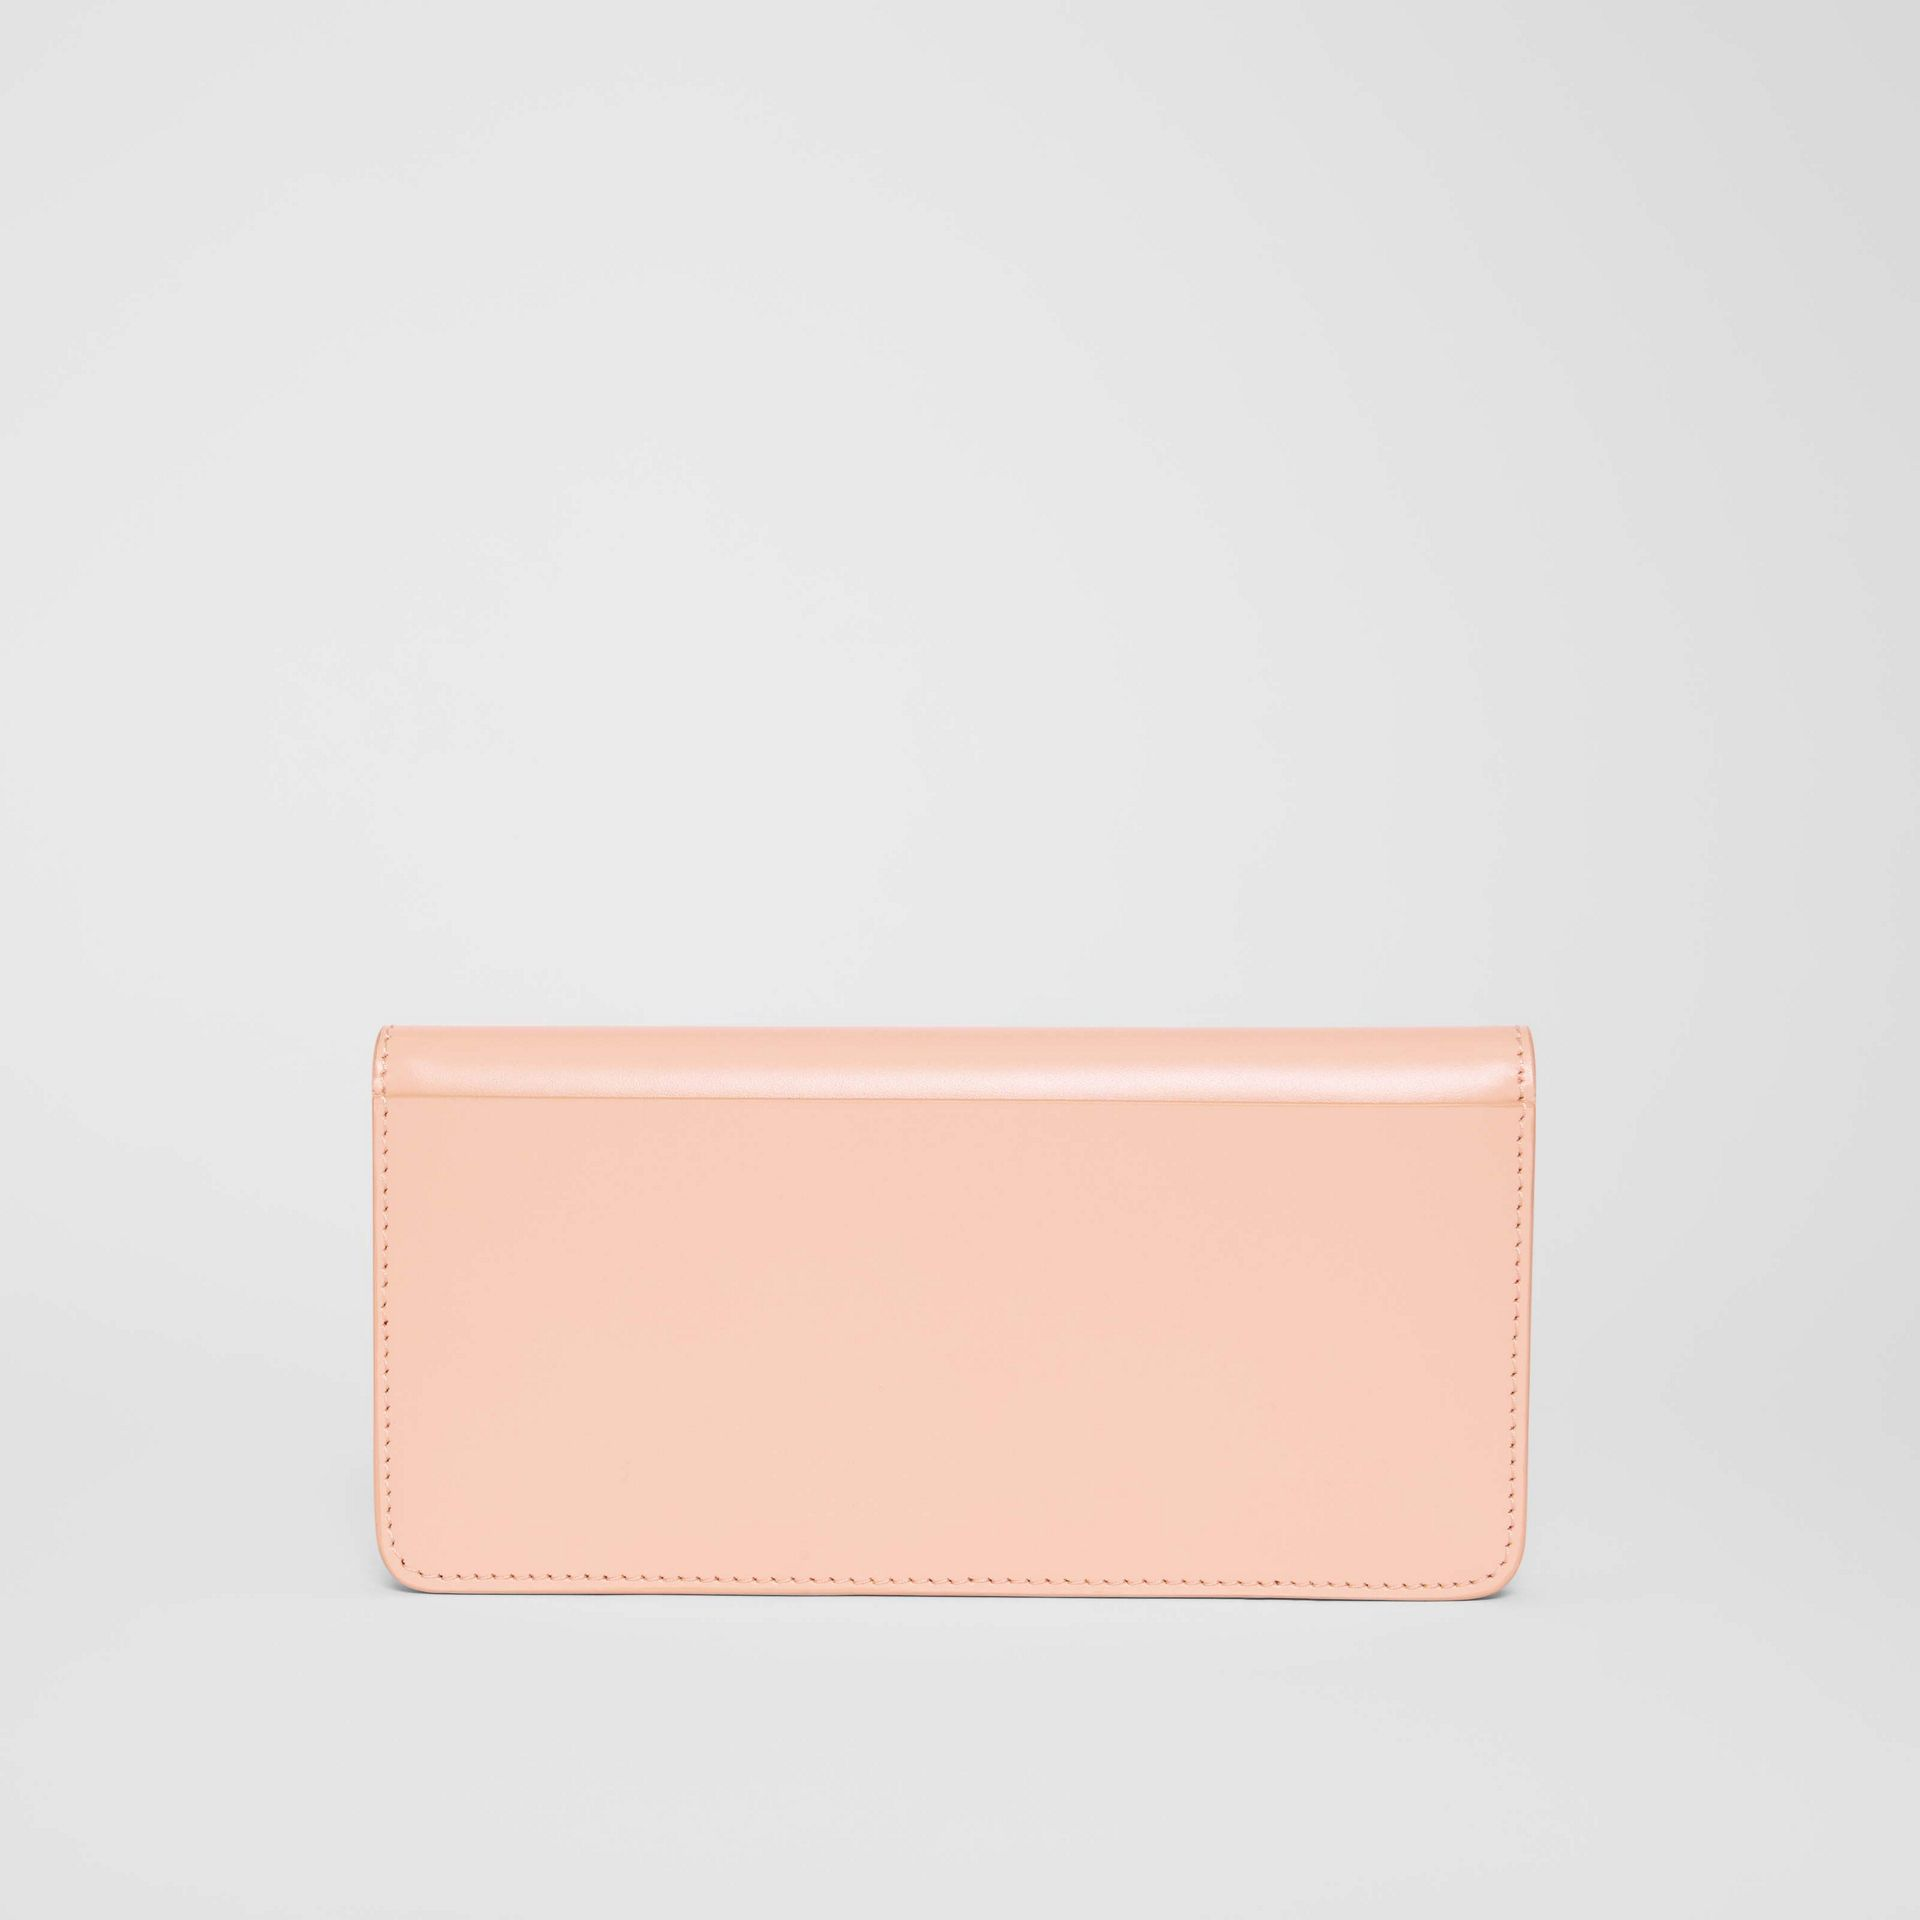 Horseferry Embossed Leather Continental Wallet in Blush Pink - Women | Burberry - gallery image 5